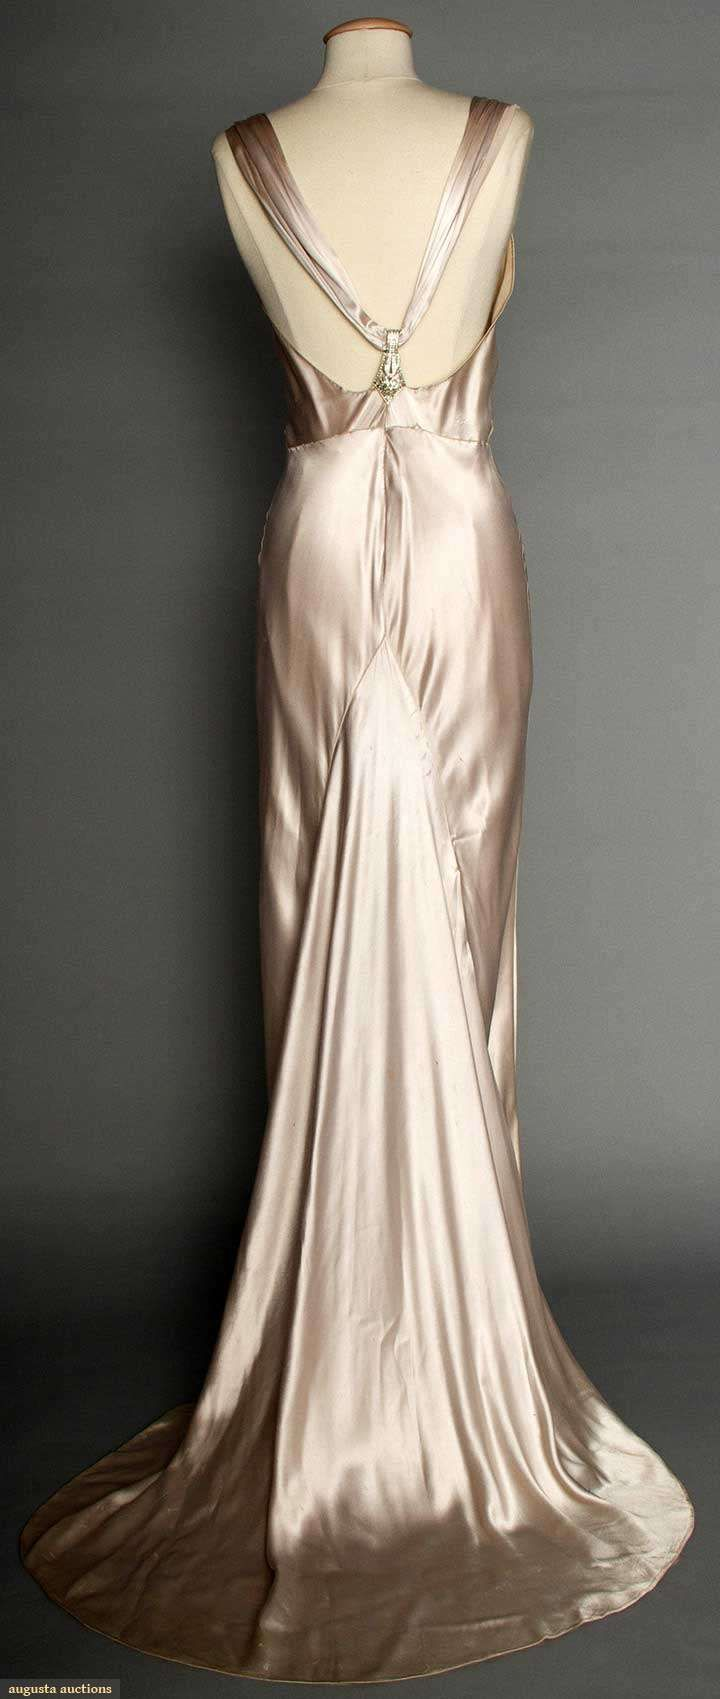 SILVER SATIN EVENING GOWN, 1930s Pale lavender/silver silk ...